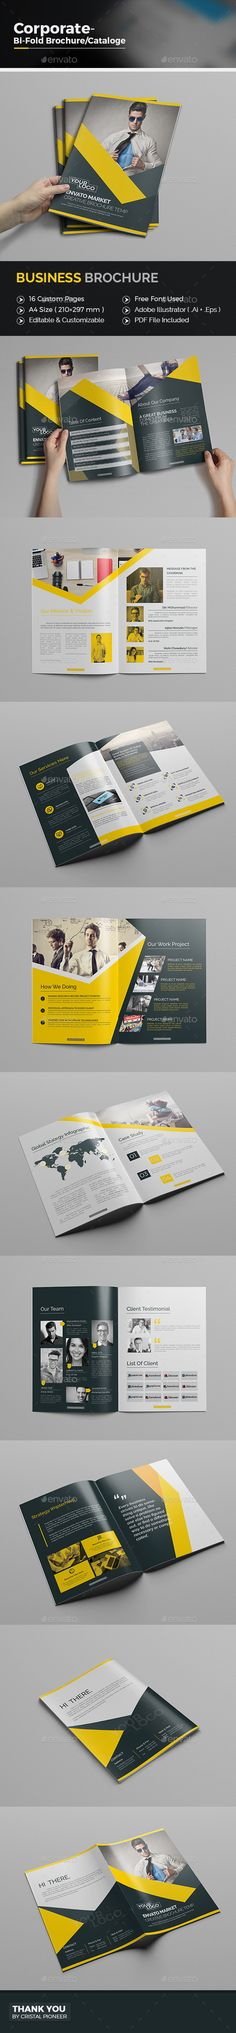 Corporate Business Brochure Template Vector EPS, AI. Download here: http://graphicriver.net/item/corporate-business-brochure/15657302?ref=ksioks